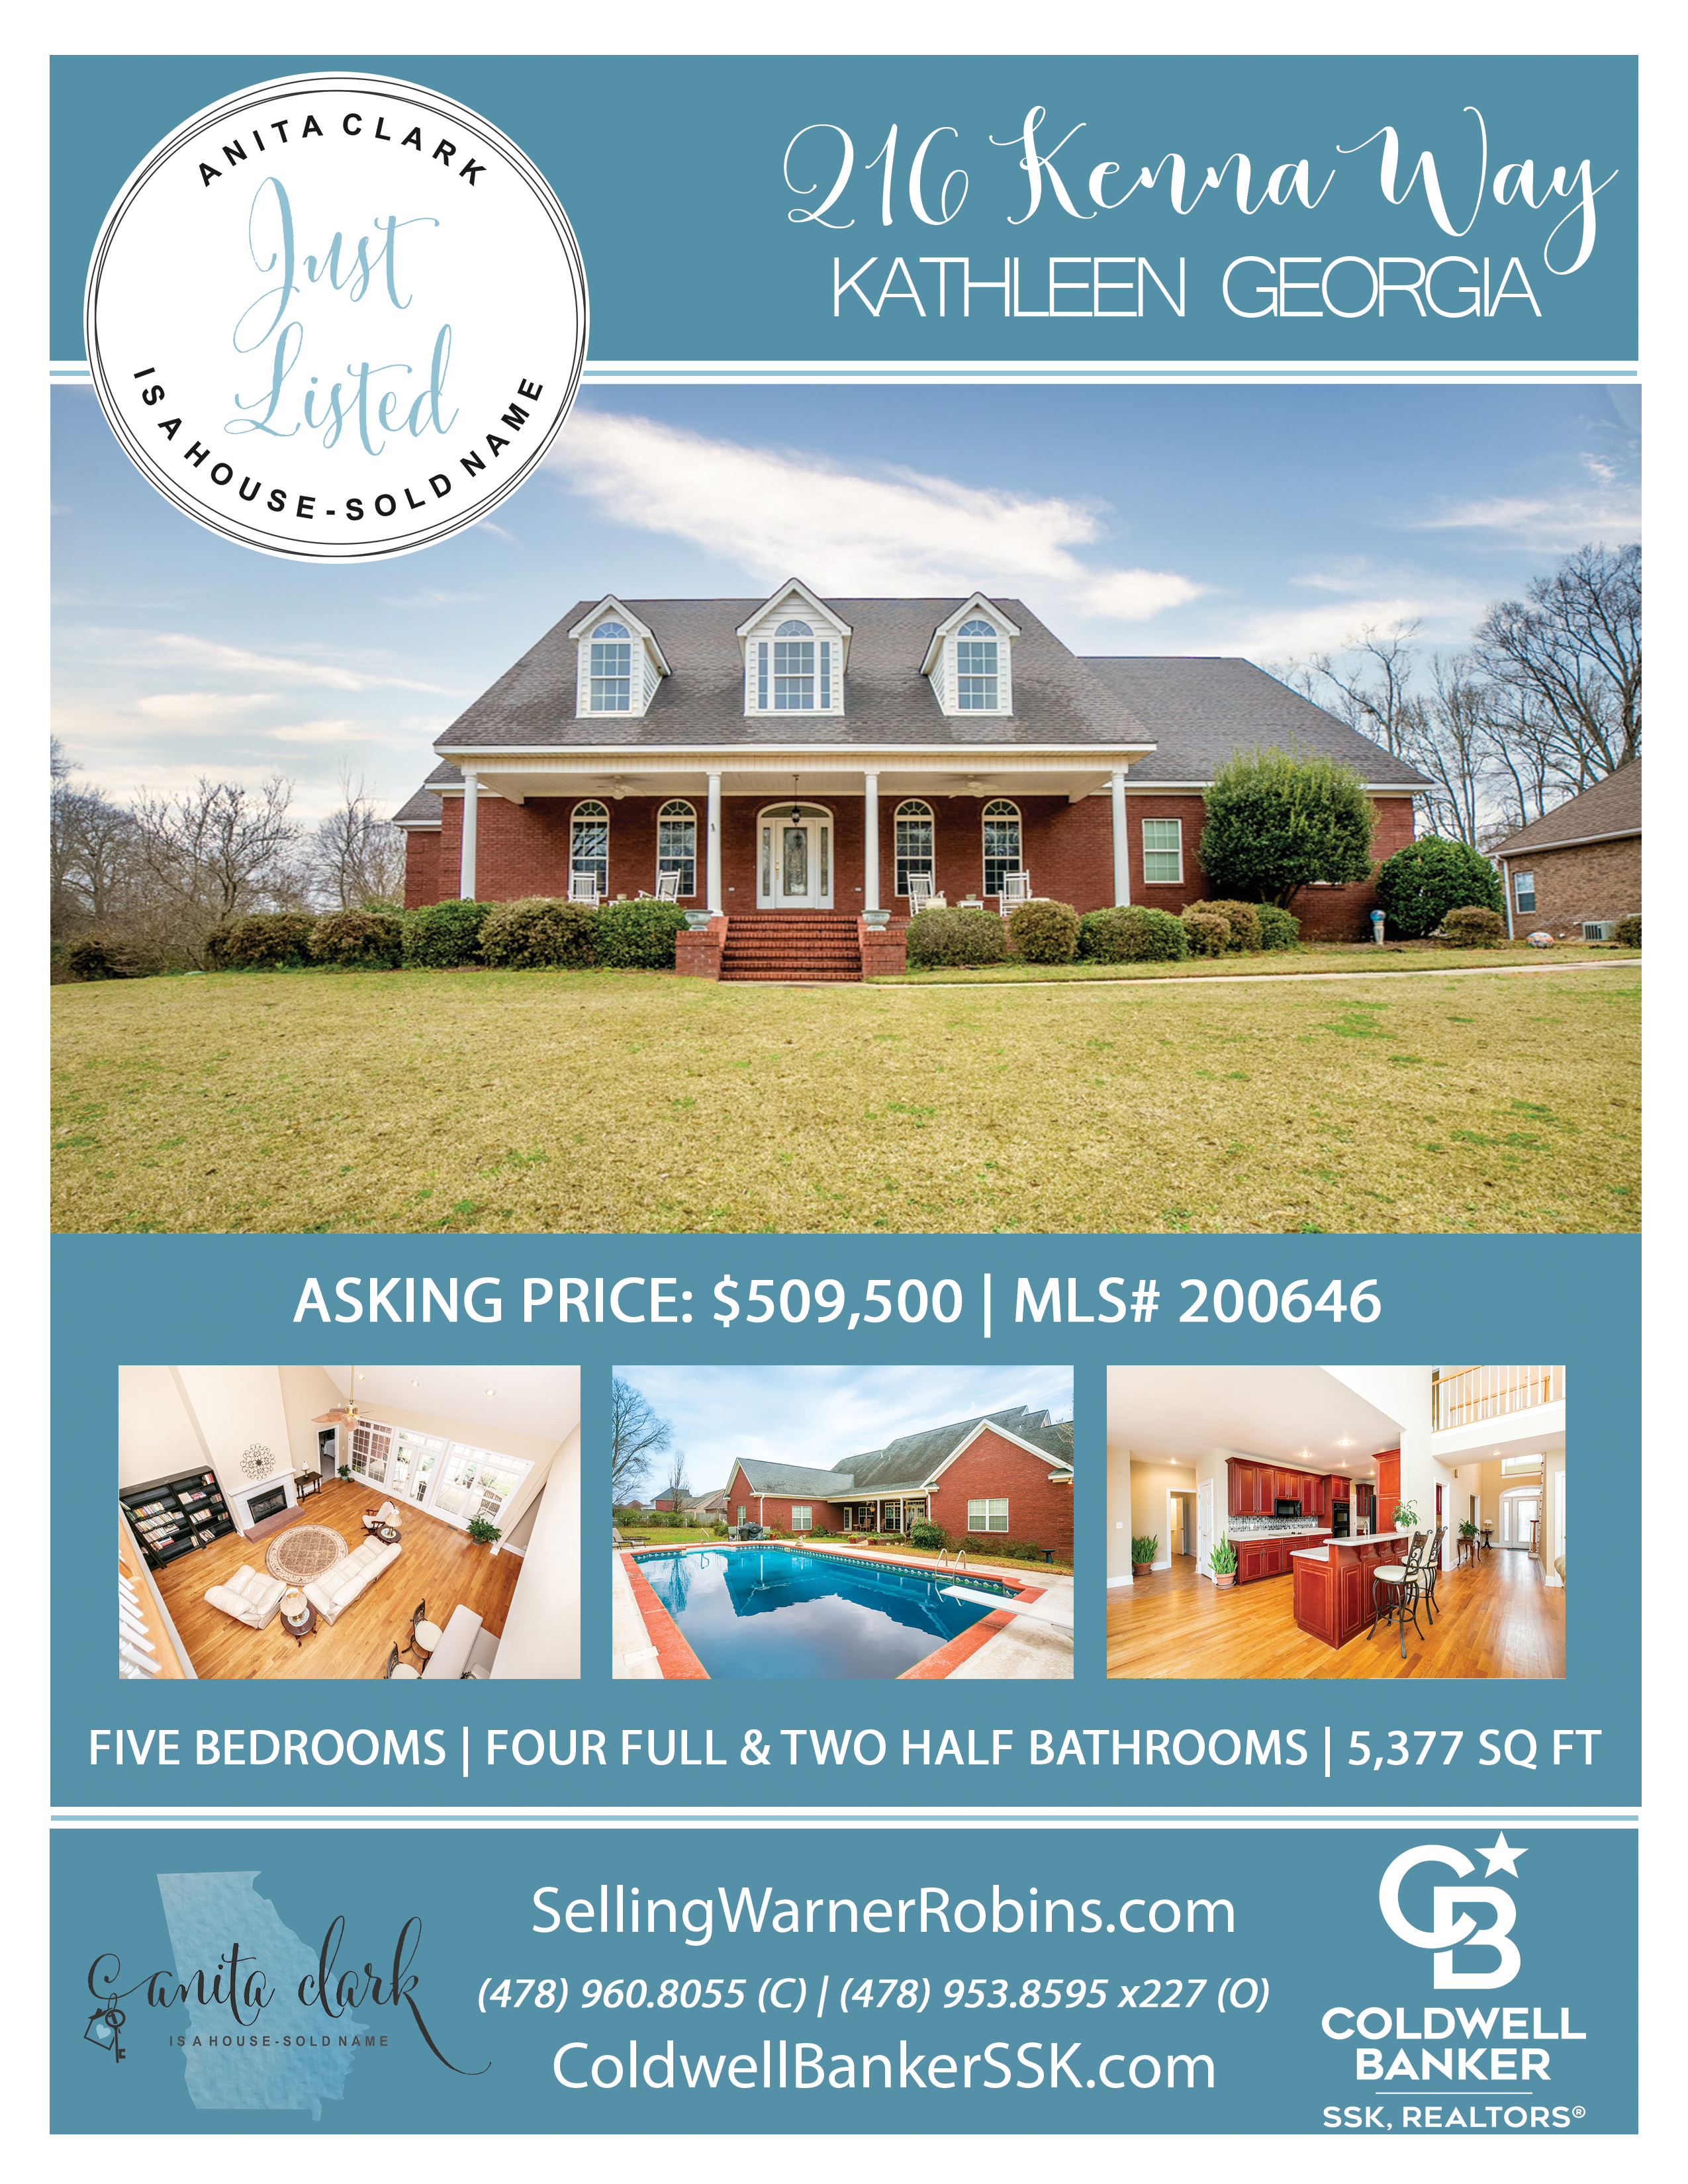 Just Listed in Harlington Downs Subdivision